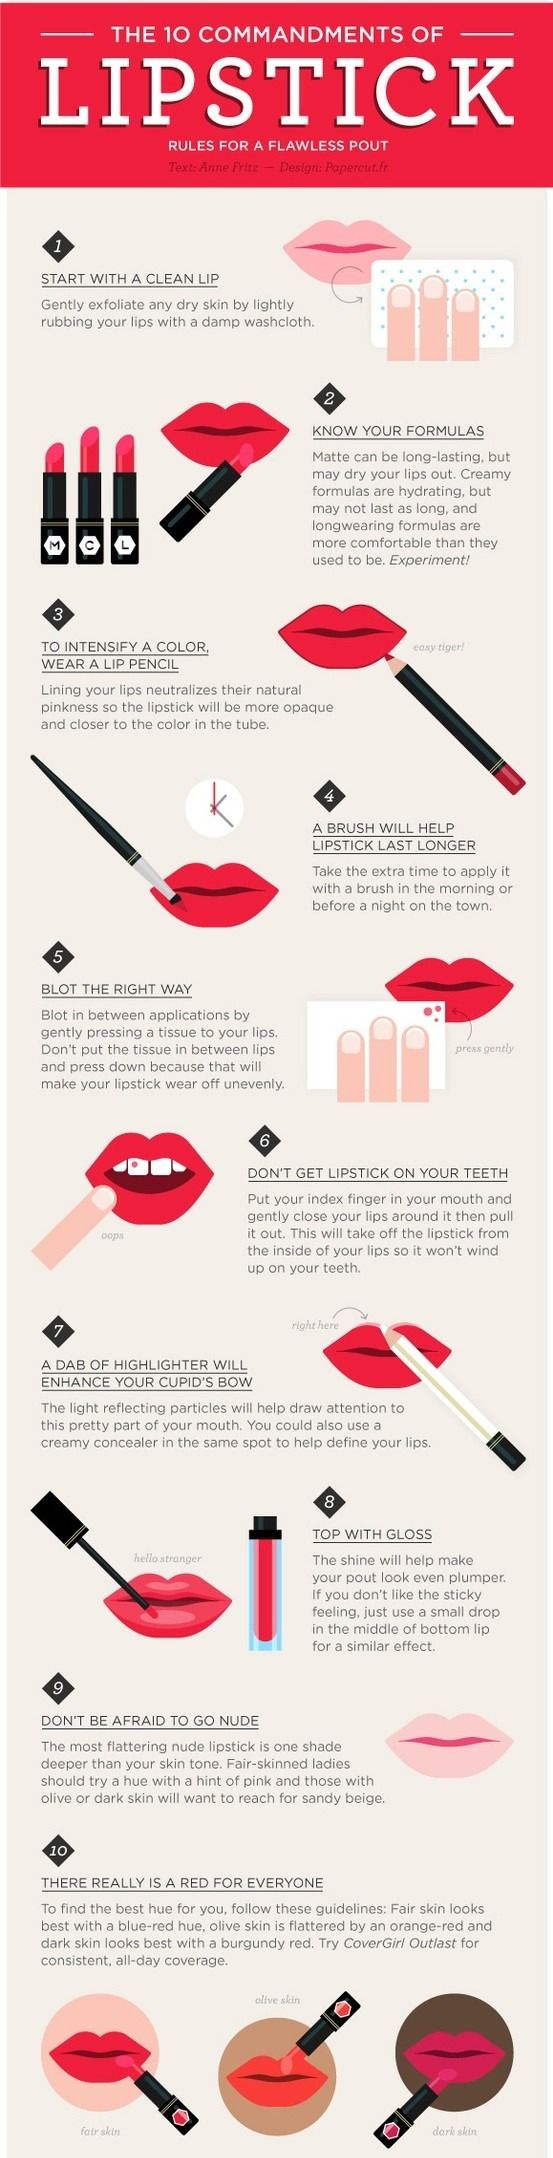 How To Properly Apply Lipstick